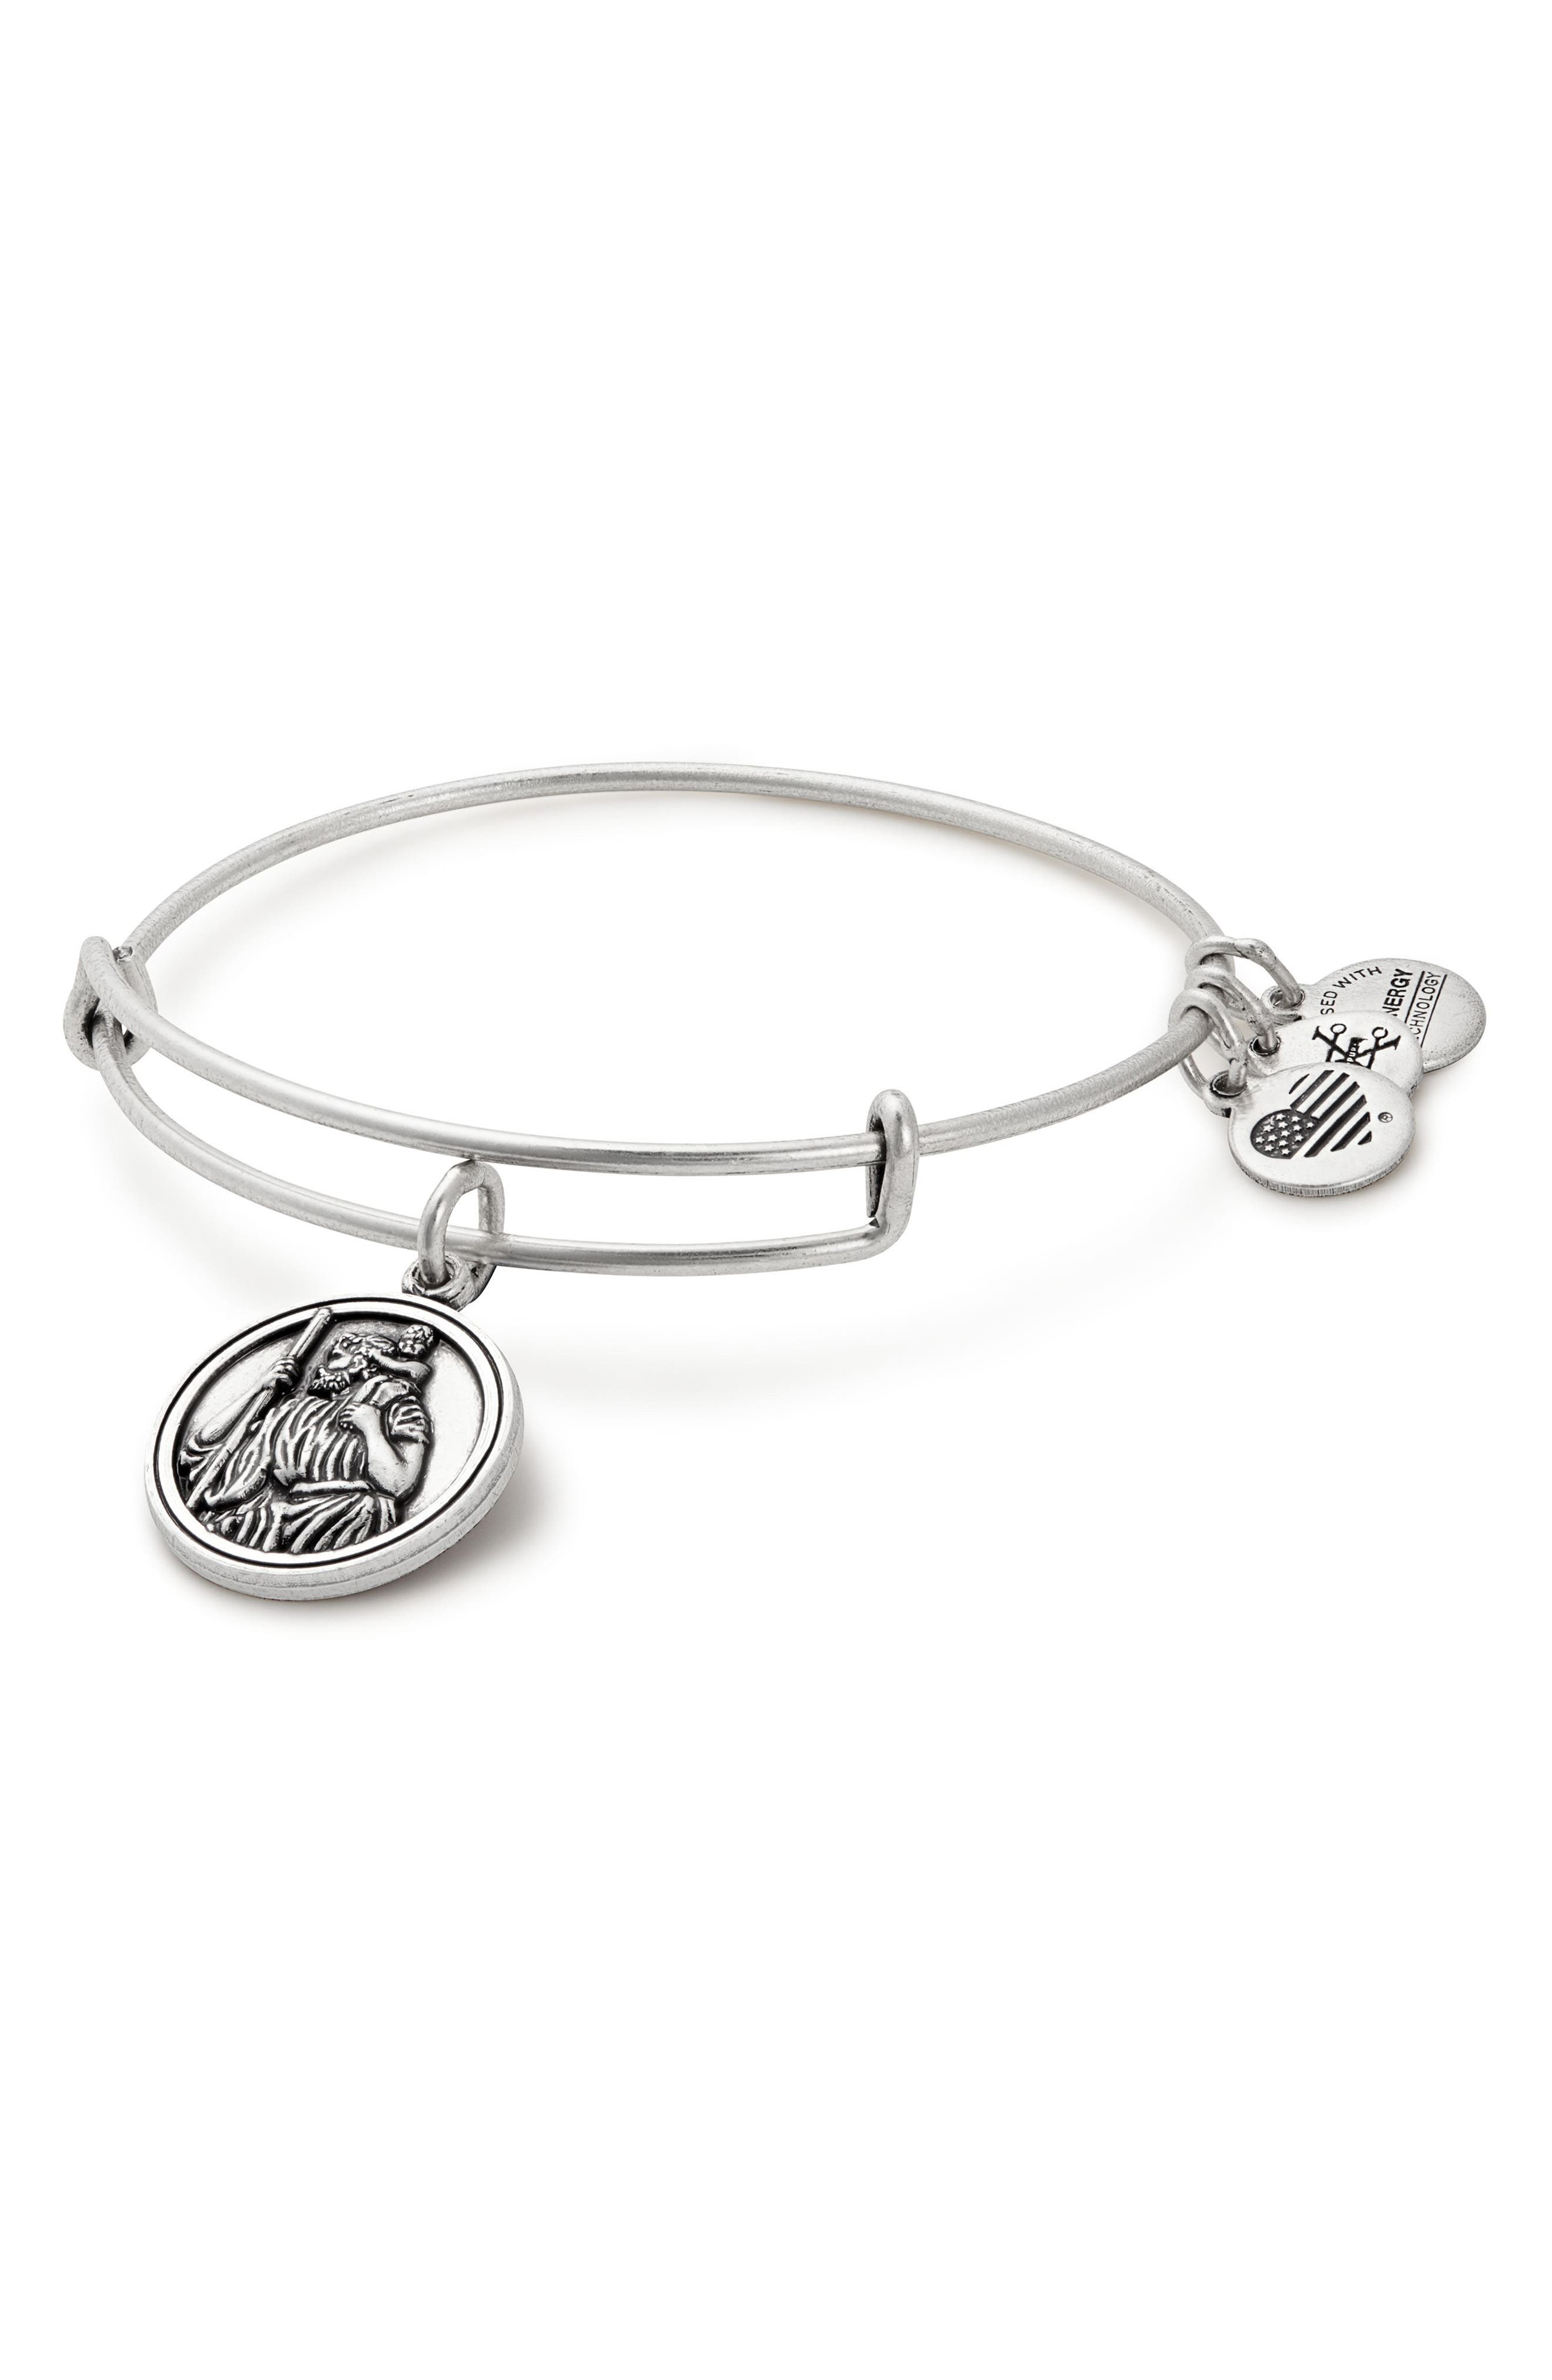 St. Christopher Adjustable Wire Bangle,                         Main,                         color, Silver